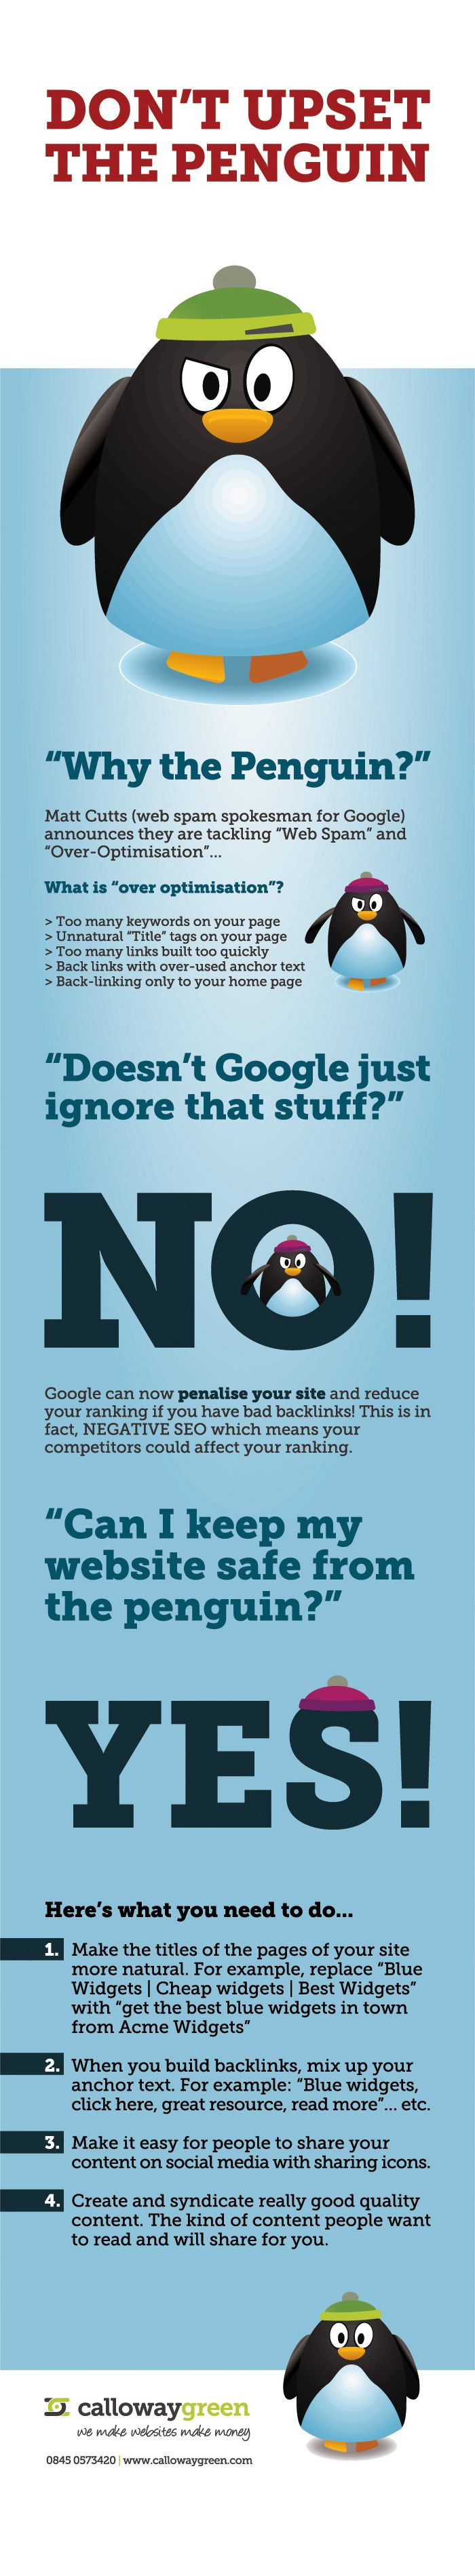 How to Make the Google Penguin Happy [Infographic]